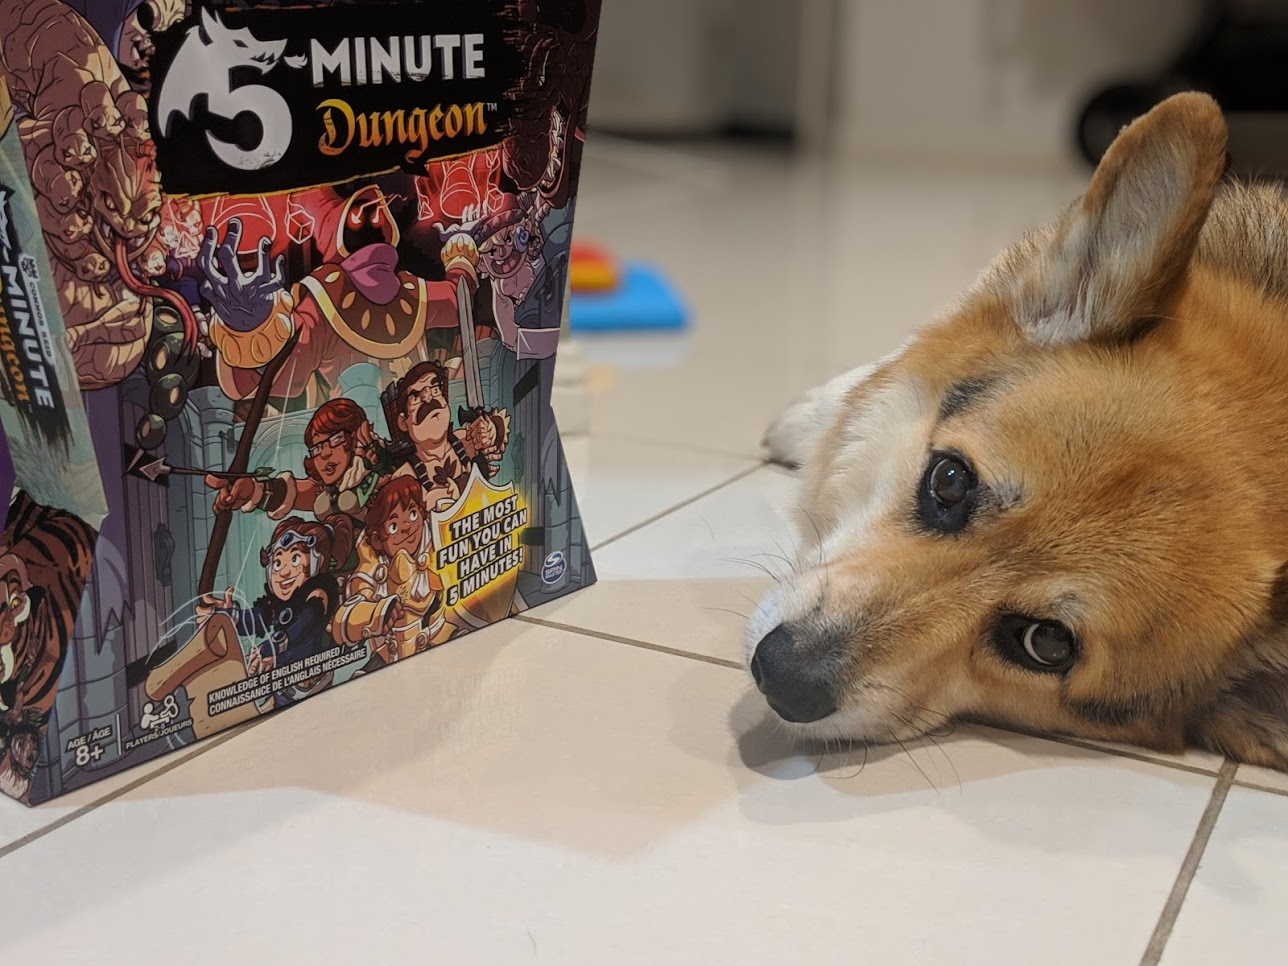 Incredibly cute corgi next to a board game box (5 minute dungeon